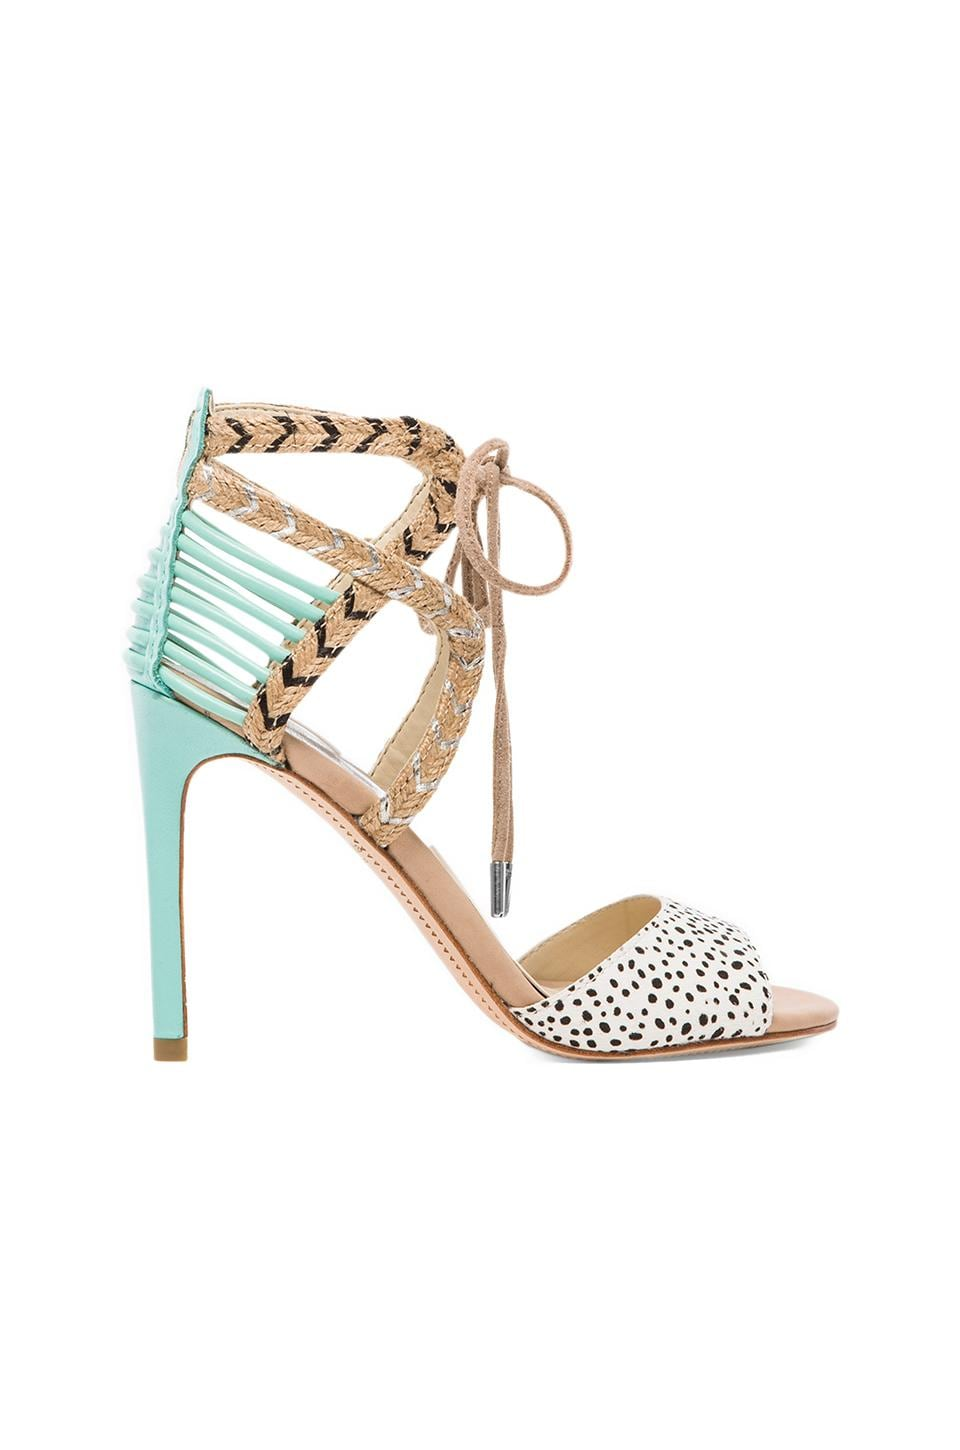 Dolce Vita Hexen Heel in Spotted Mint